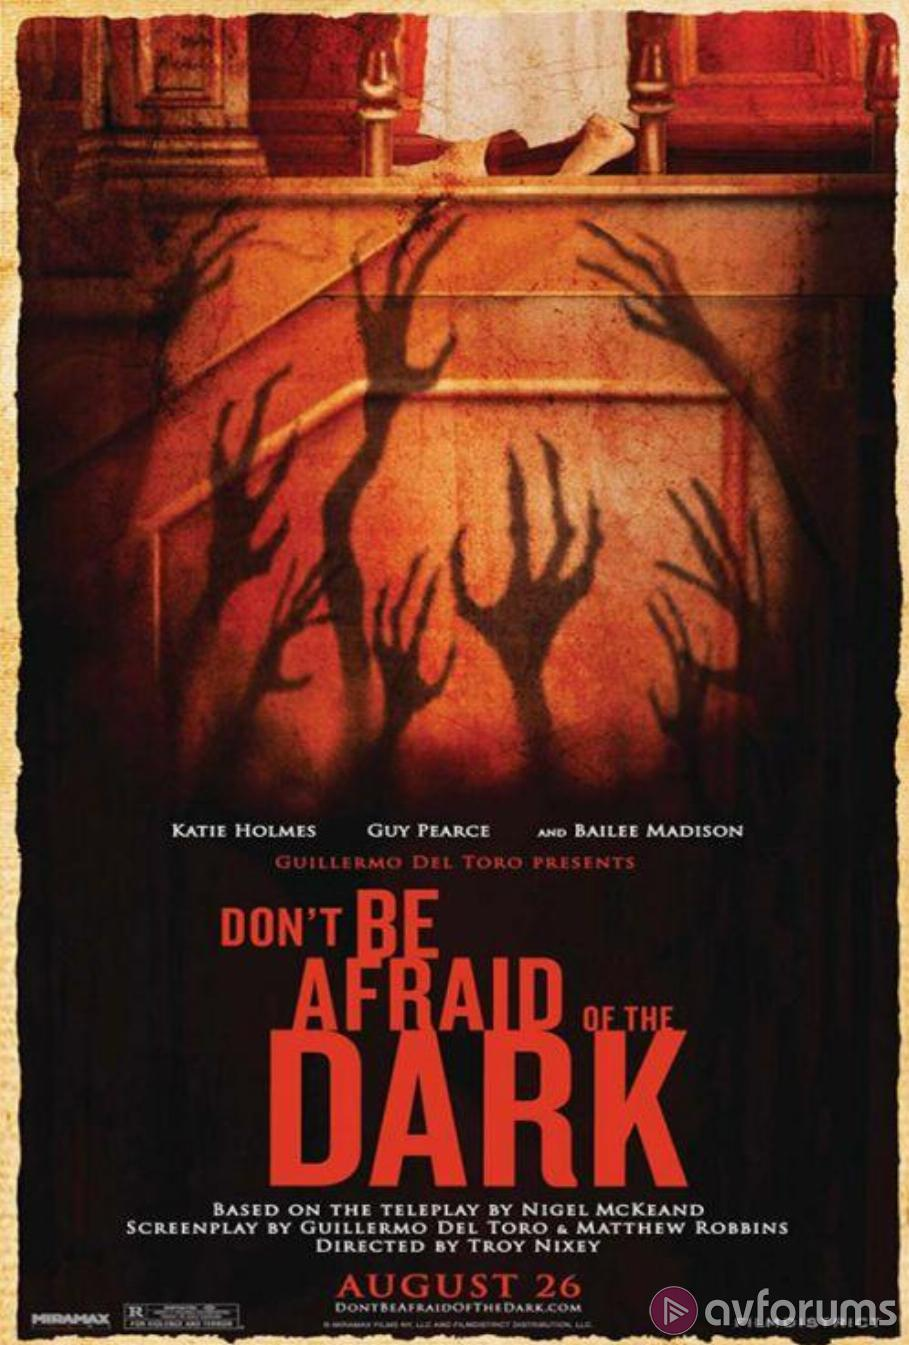 Don't Be Afraid of the Dark Review